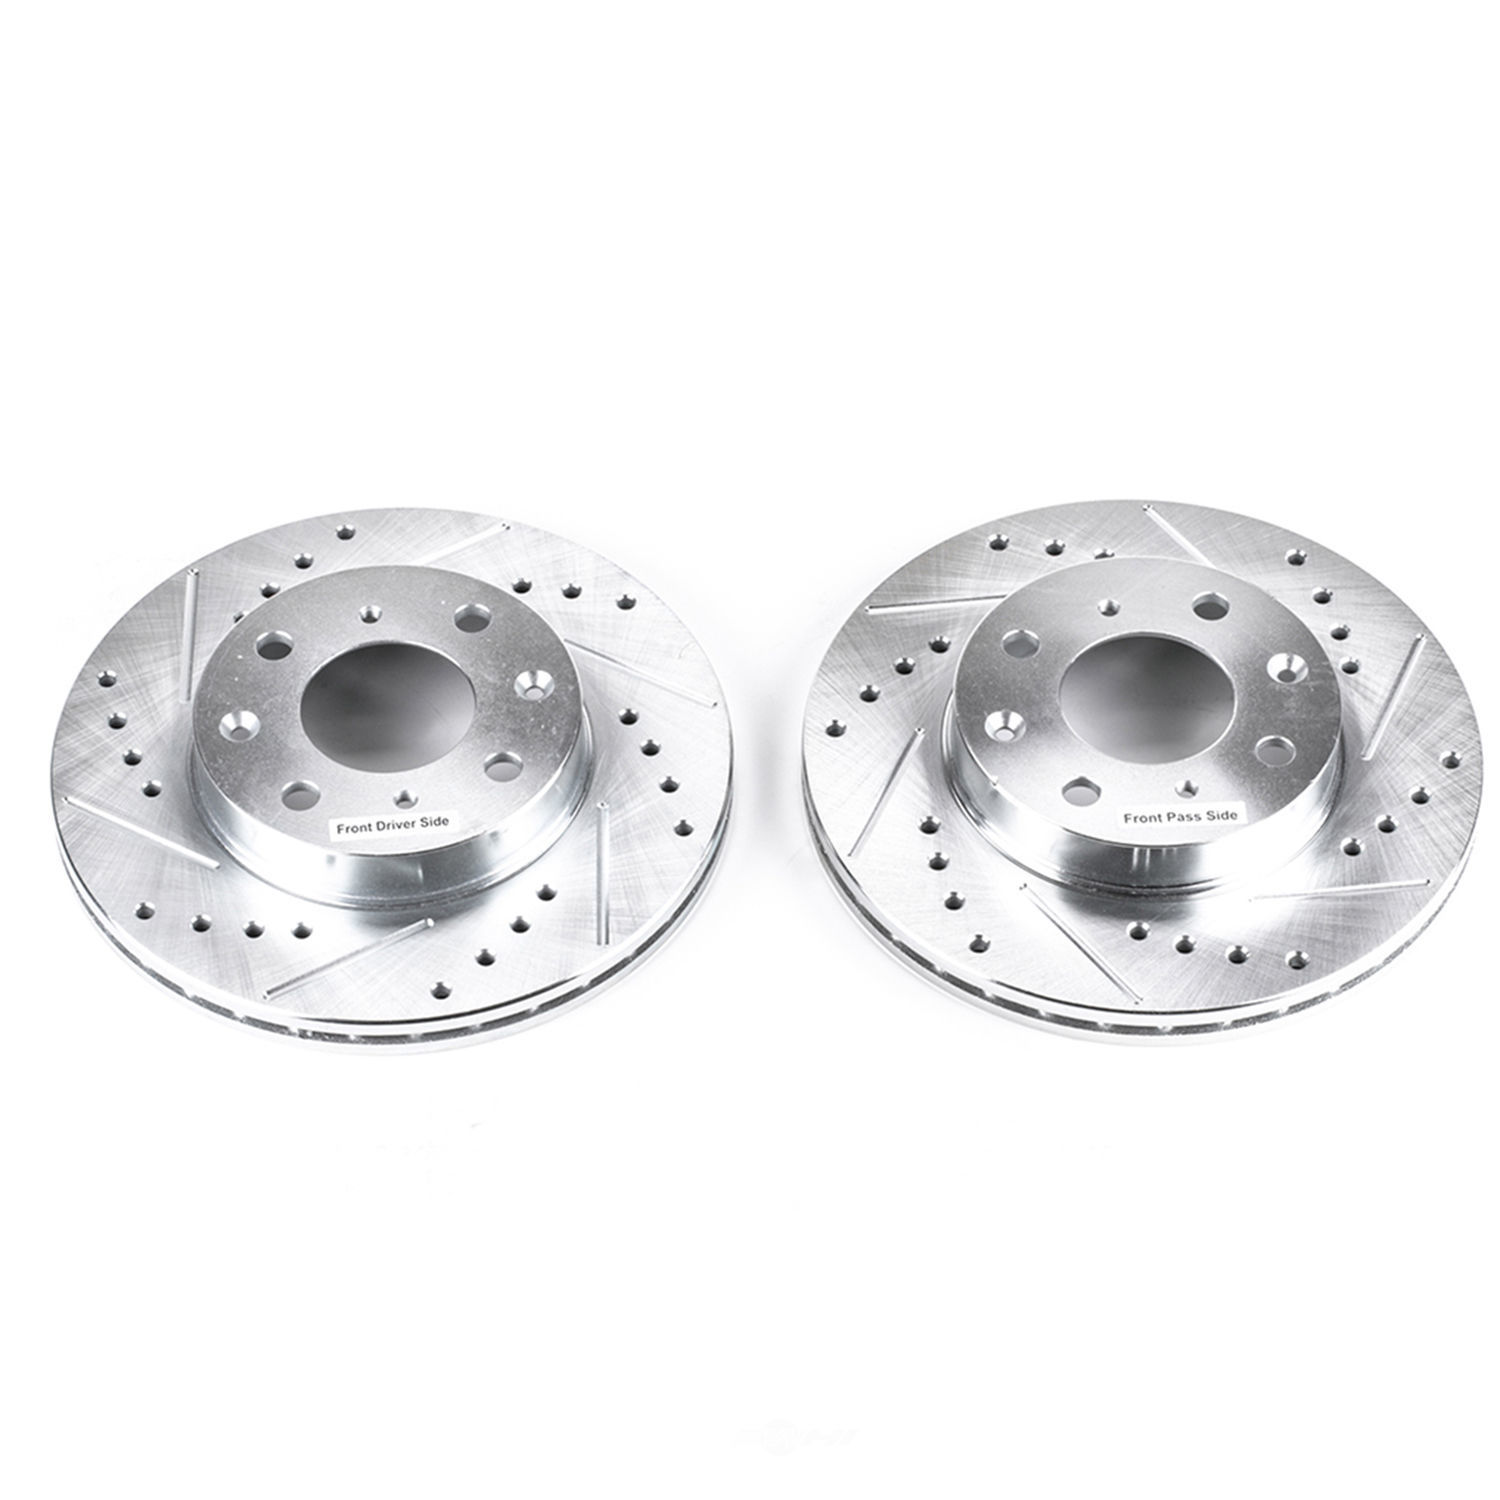 POWER STOP - Extreme Performance Drilled & Slotted Brake Rotor (Front) - PWS JBR304XPR